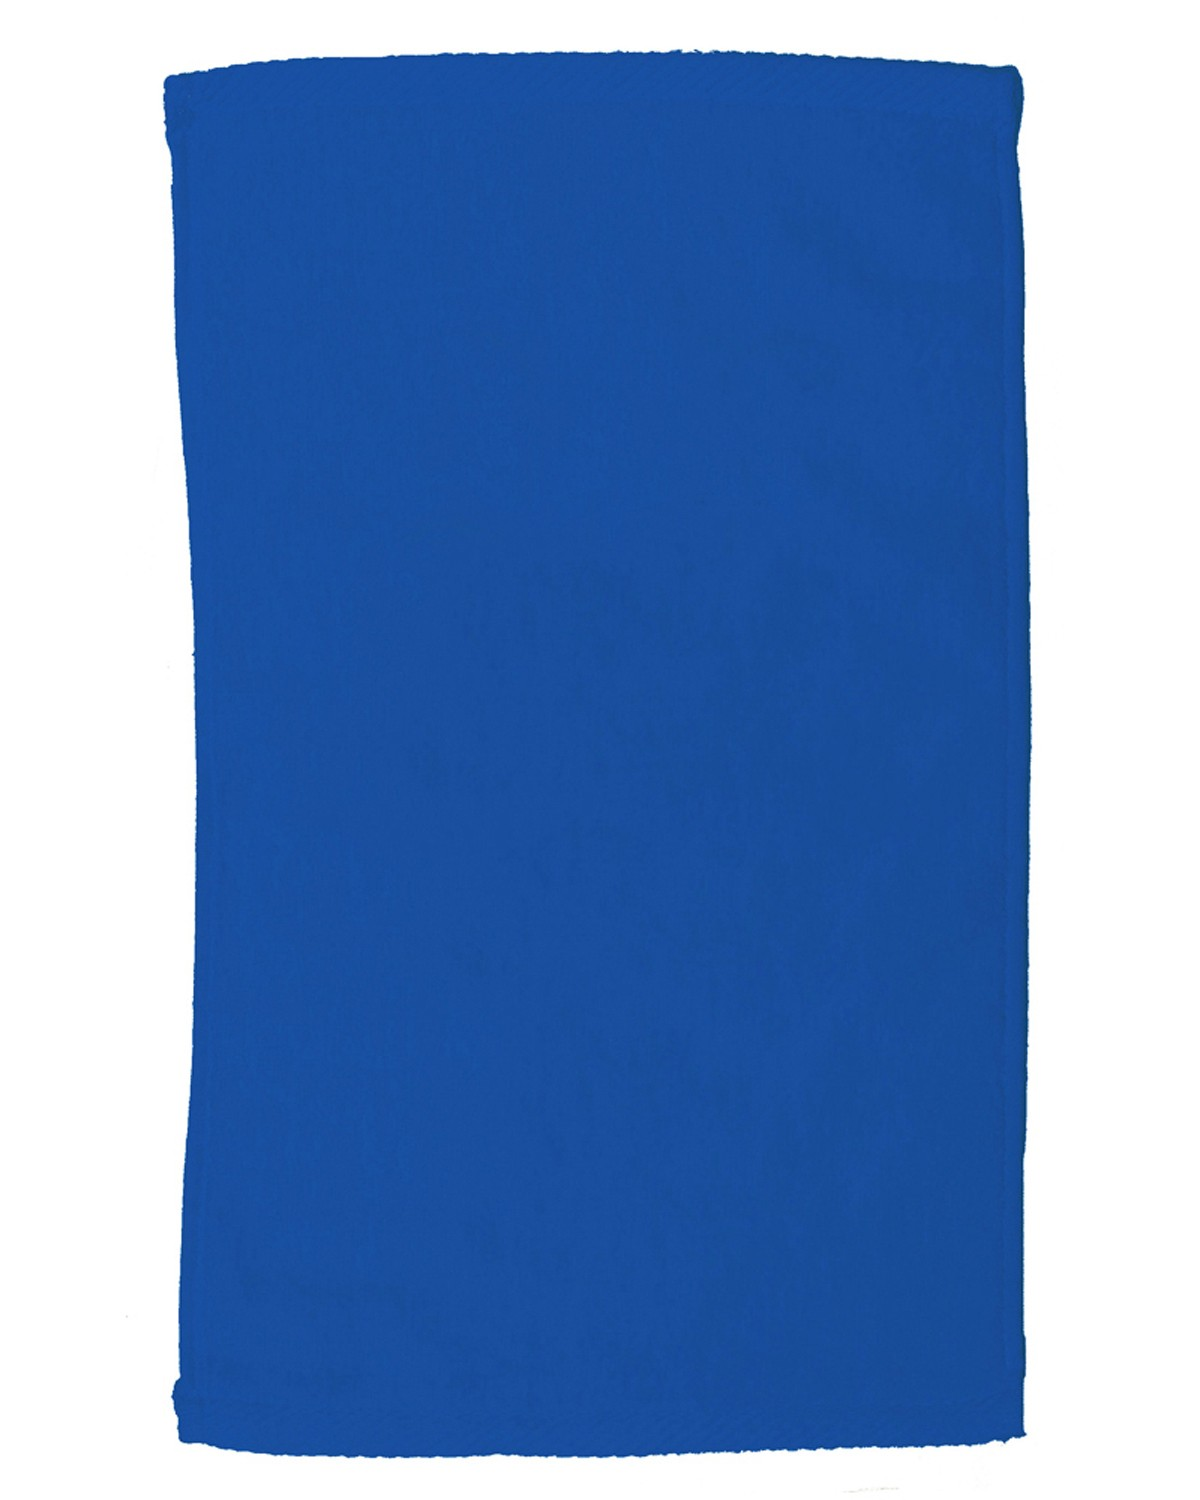 1118DE Pro Towels ROYAL BLUE